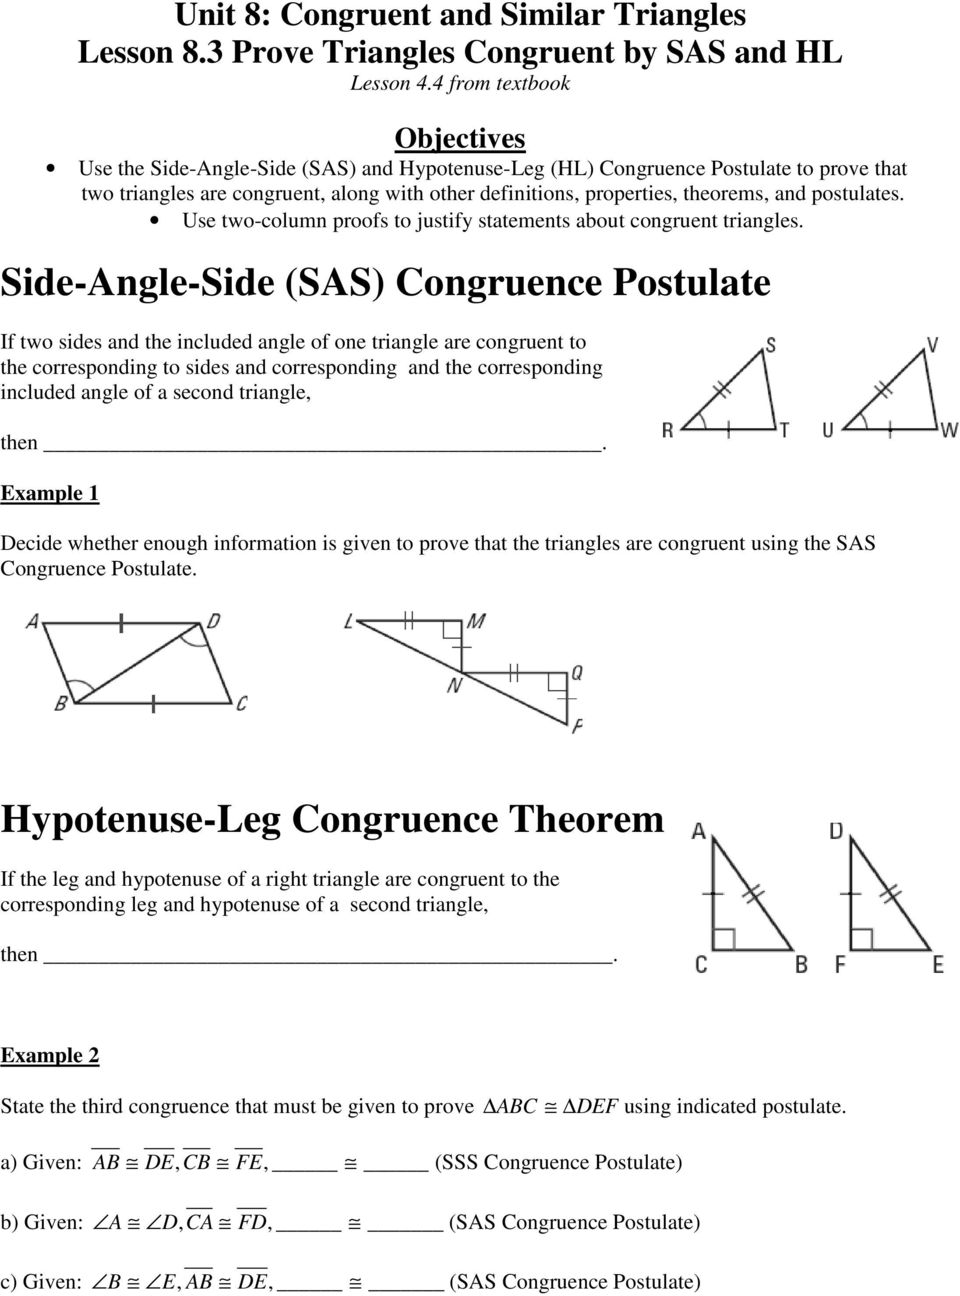 Unit 8 Congruent And Similar Triangles Lesson 8 1 Apply Congruence And Triangles Lesson 4 2 From Textbook Pdf Free Download